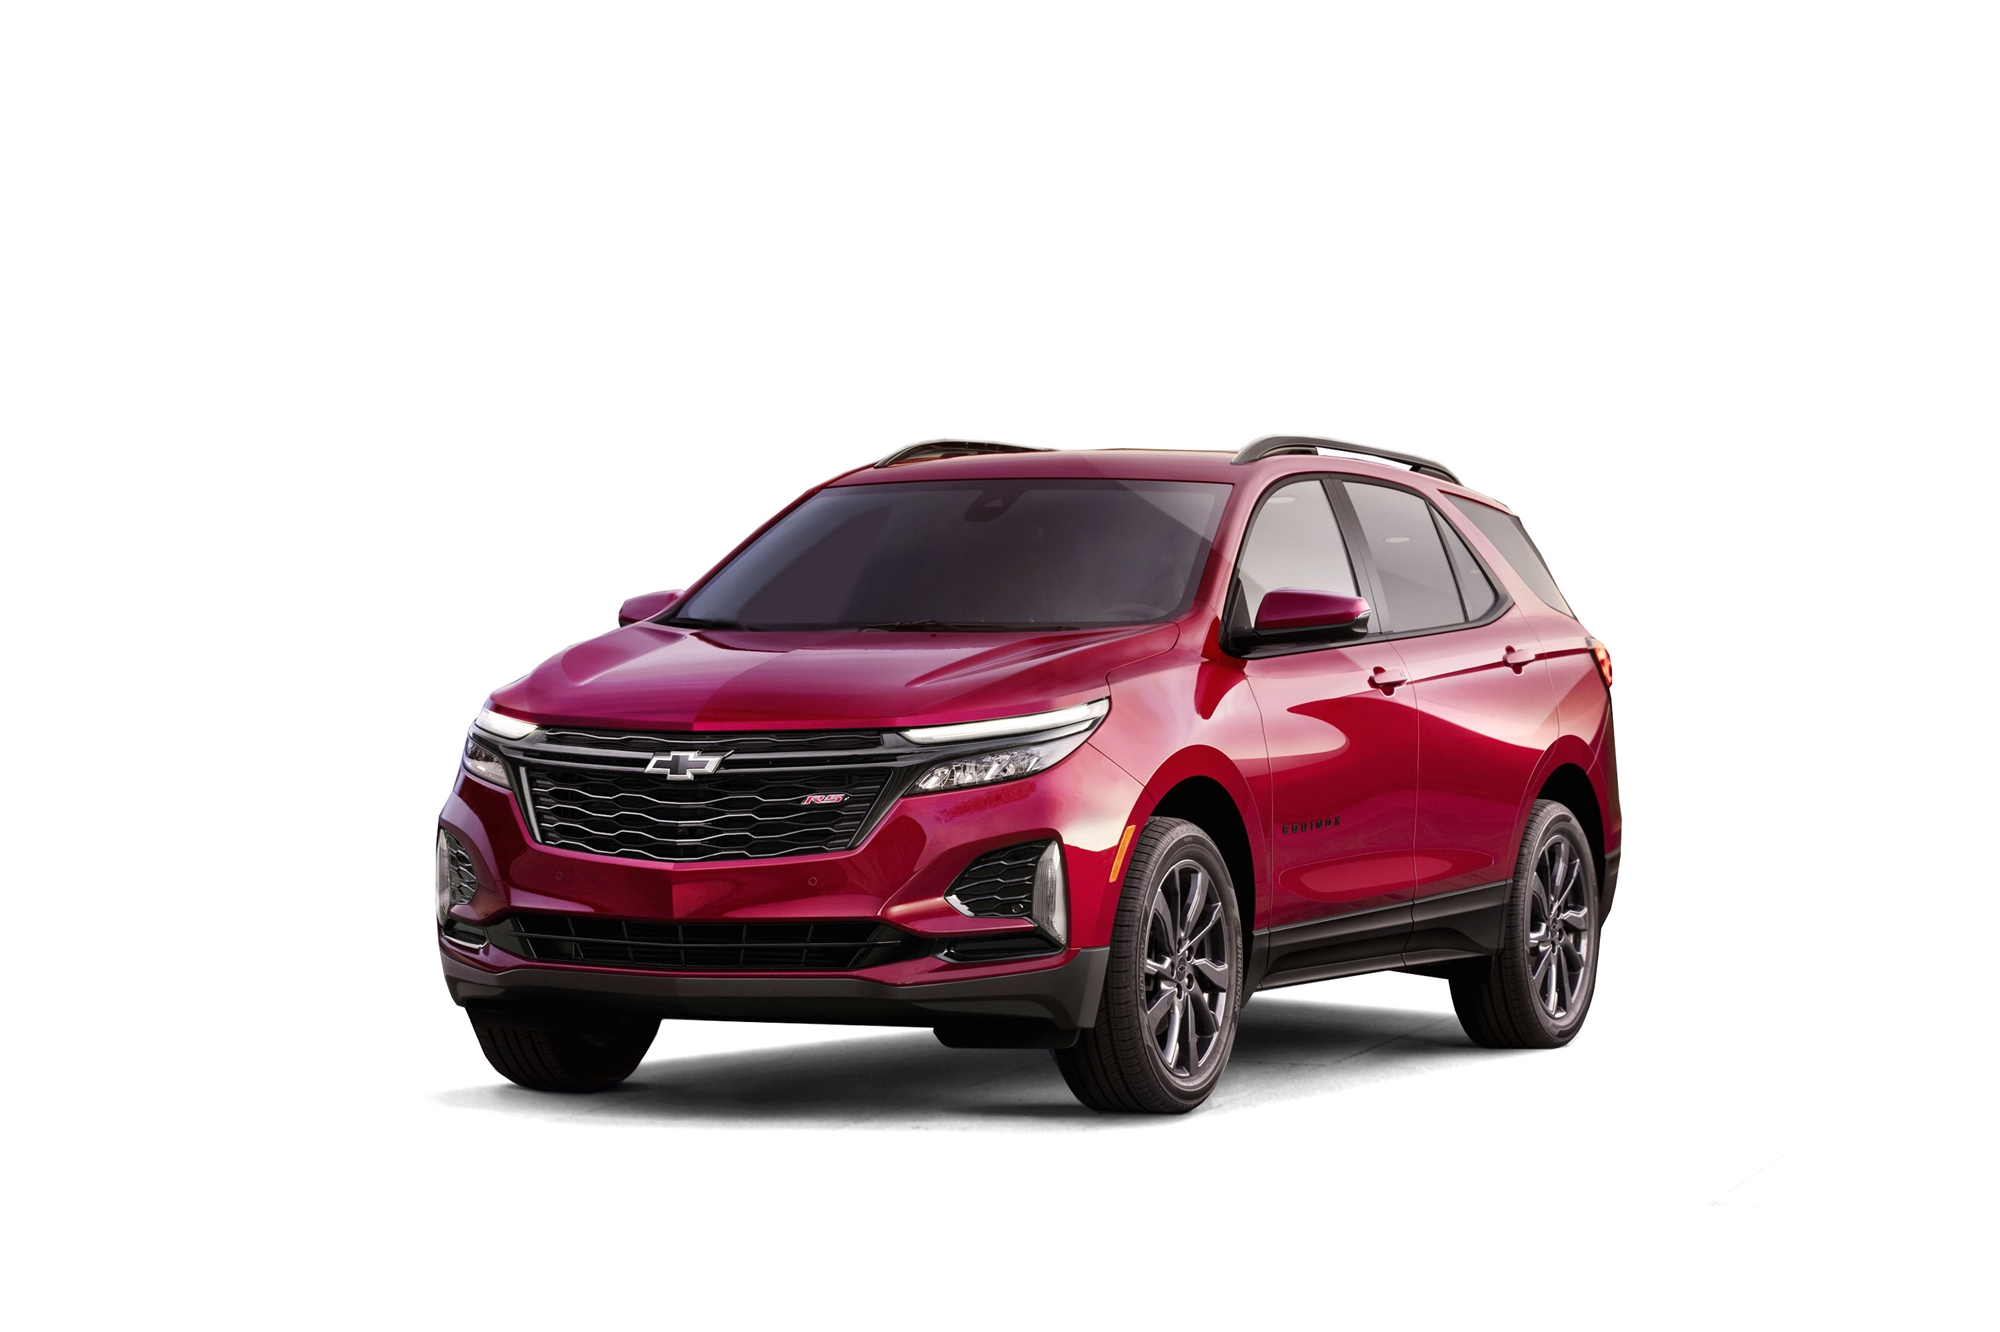 2021 Chevrolet Equinox RS Full Specs, Features and Price ...